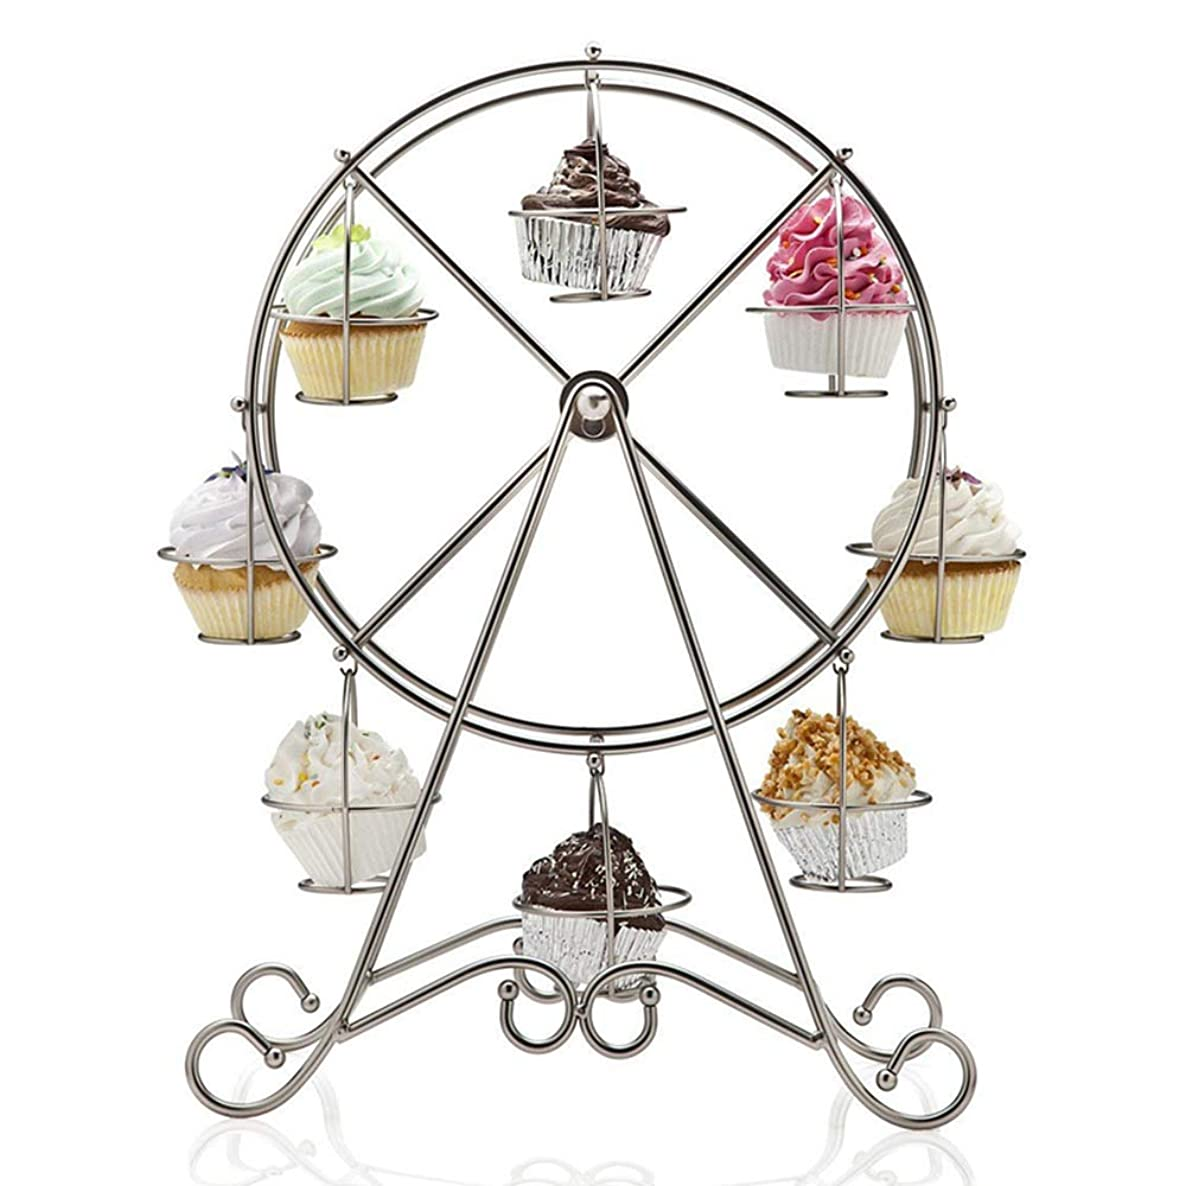 Mary Paxton 8 Cups Cupcake Stand Display,Ferris Wheel Cake Holder Wedding Decoration Mold Fondant Sugar Bow Craft Molds DIY Cake Decorating Stand Stainless Steel Cup Holder Party Shop Rack Decor 17